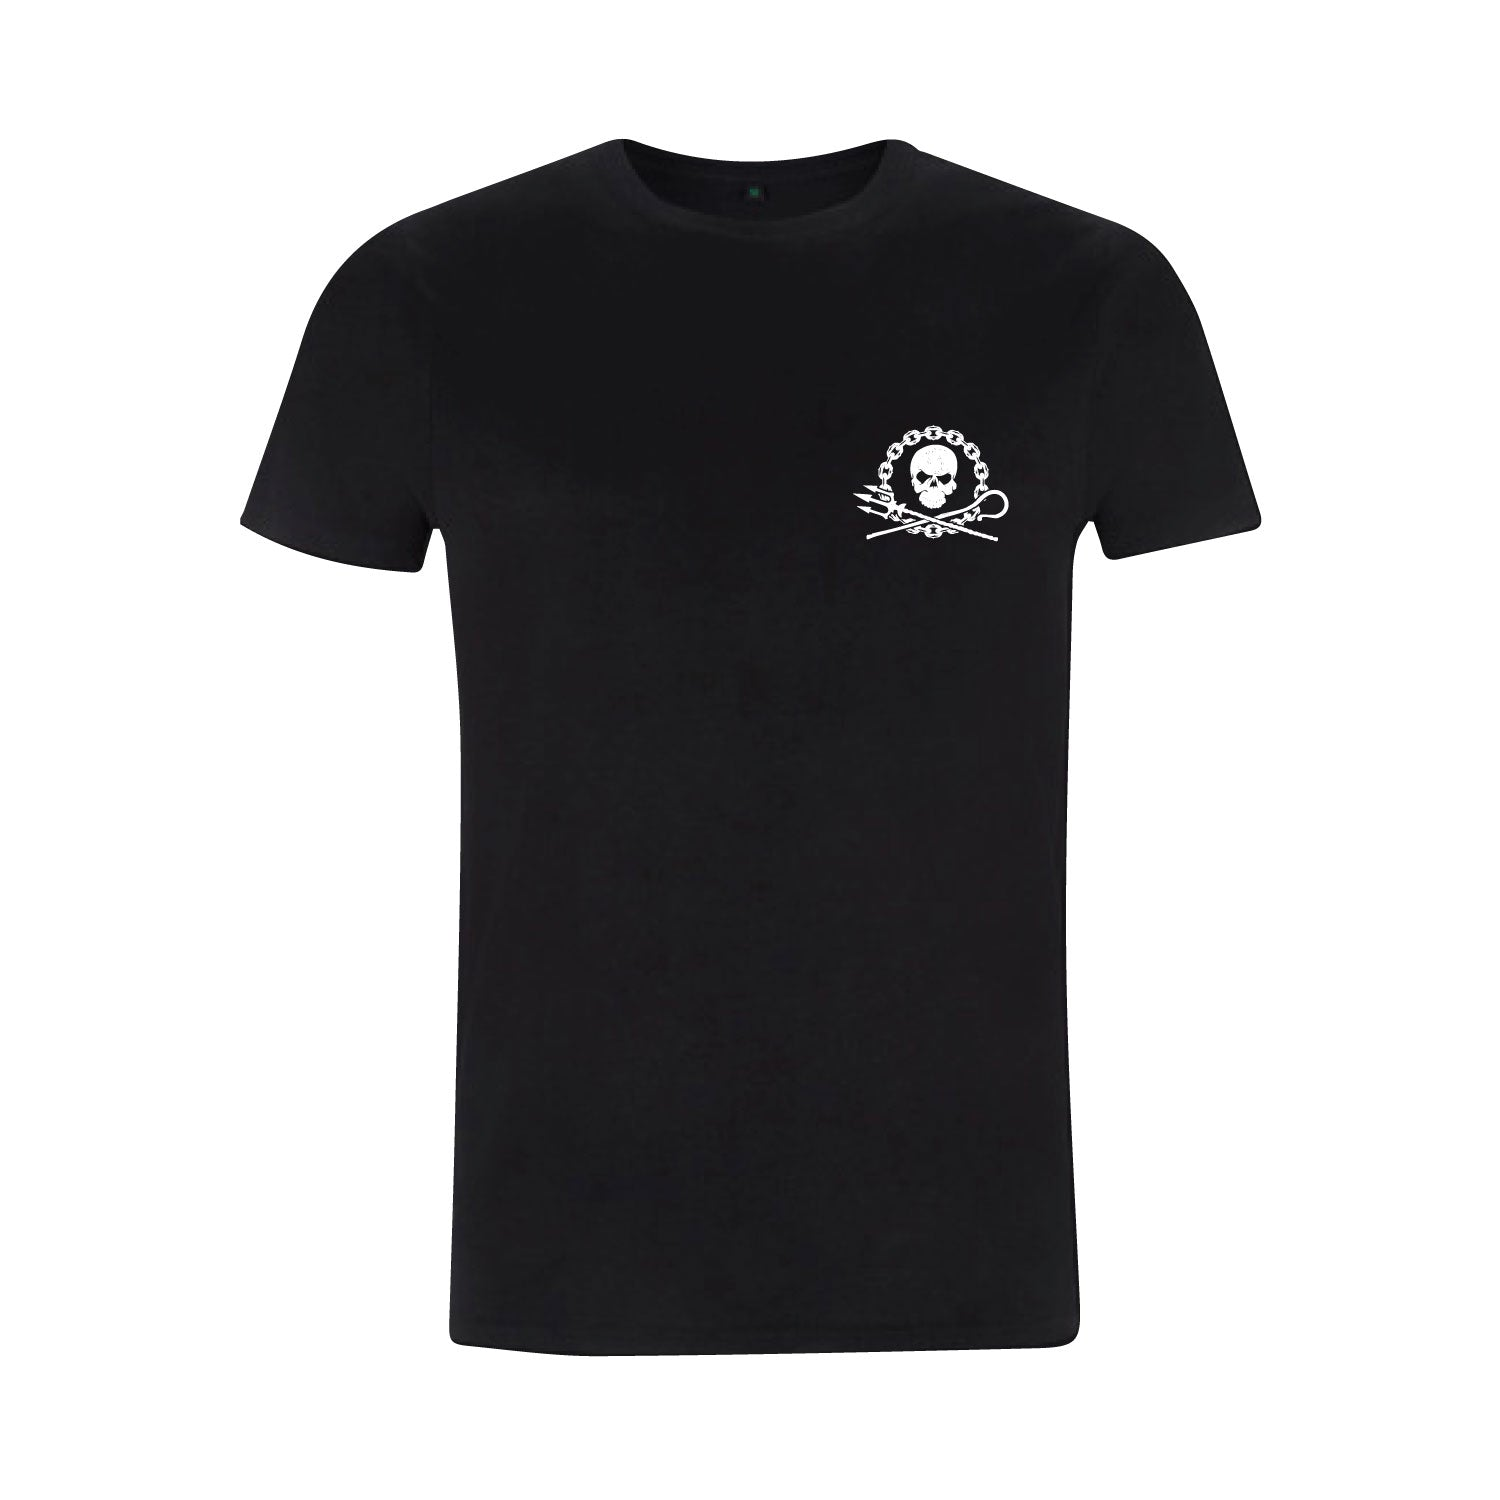 Stand Fast Circle of Strength Unisex Tee - Black